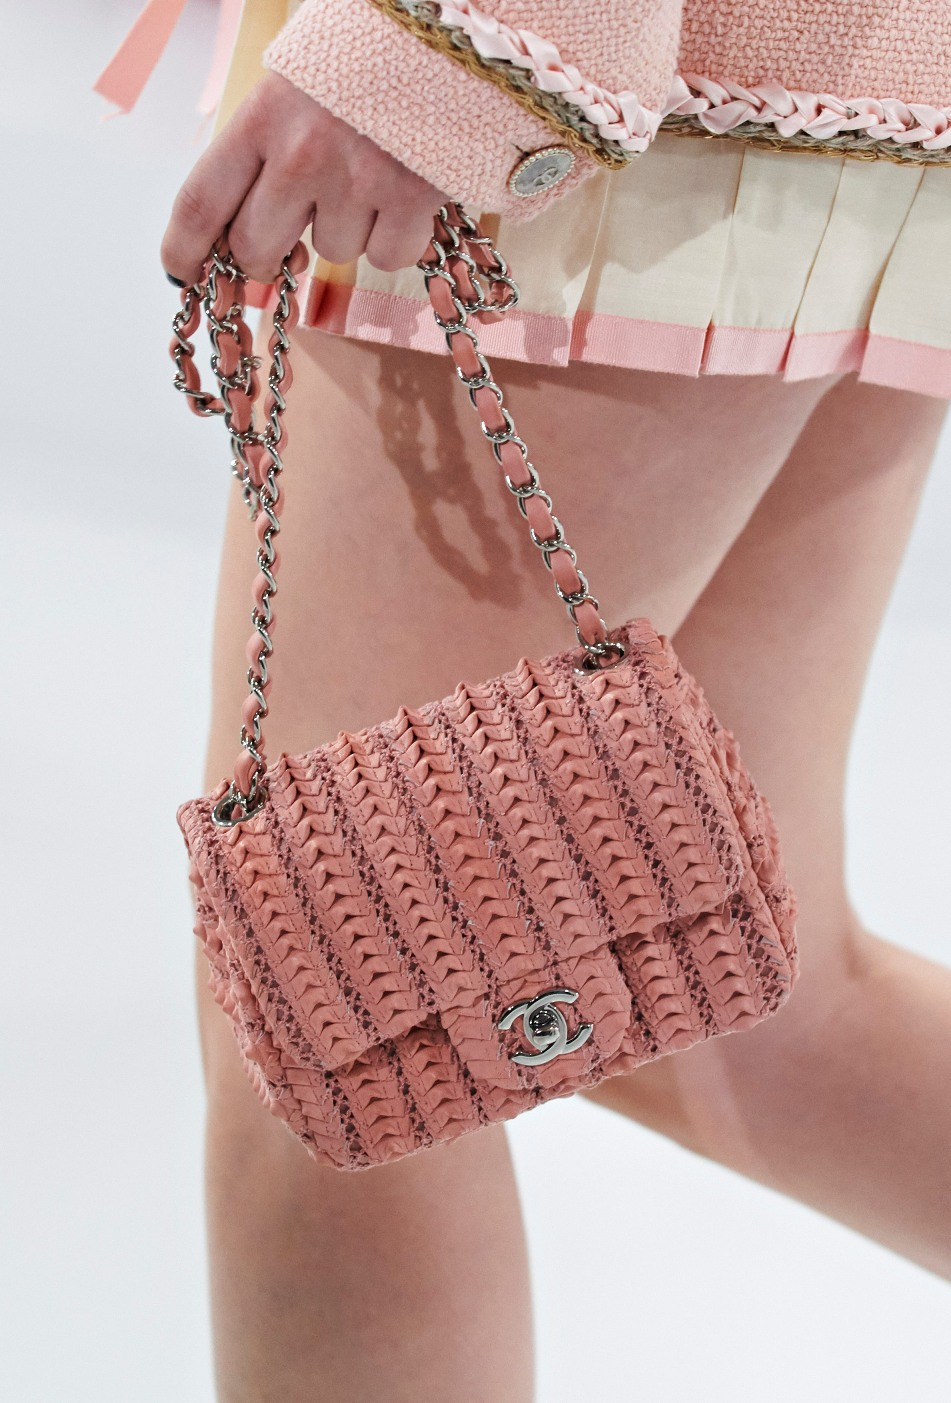 chanel-seoul-resort-cruise-2016-bags-accessories-18  aa8f4818ede5a